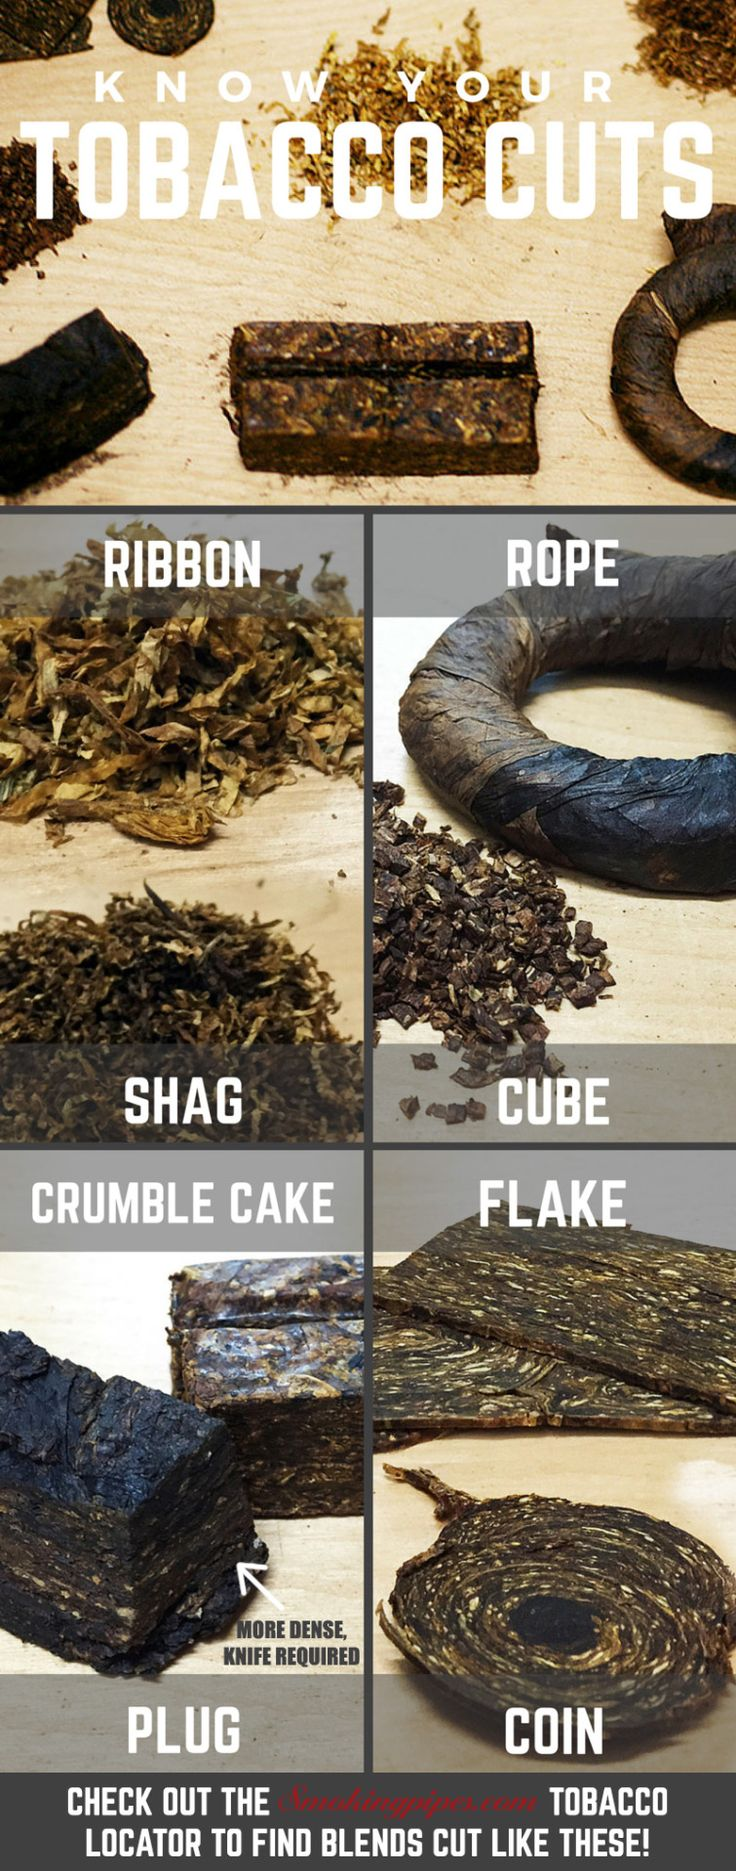 Know Your Tobacco Cuts Flakes, ribbons, ropes, plugs… they all have their own unique characteristics, both in their presentation and the smoke and flavor they provide. But how do you tell the...